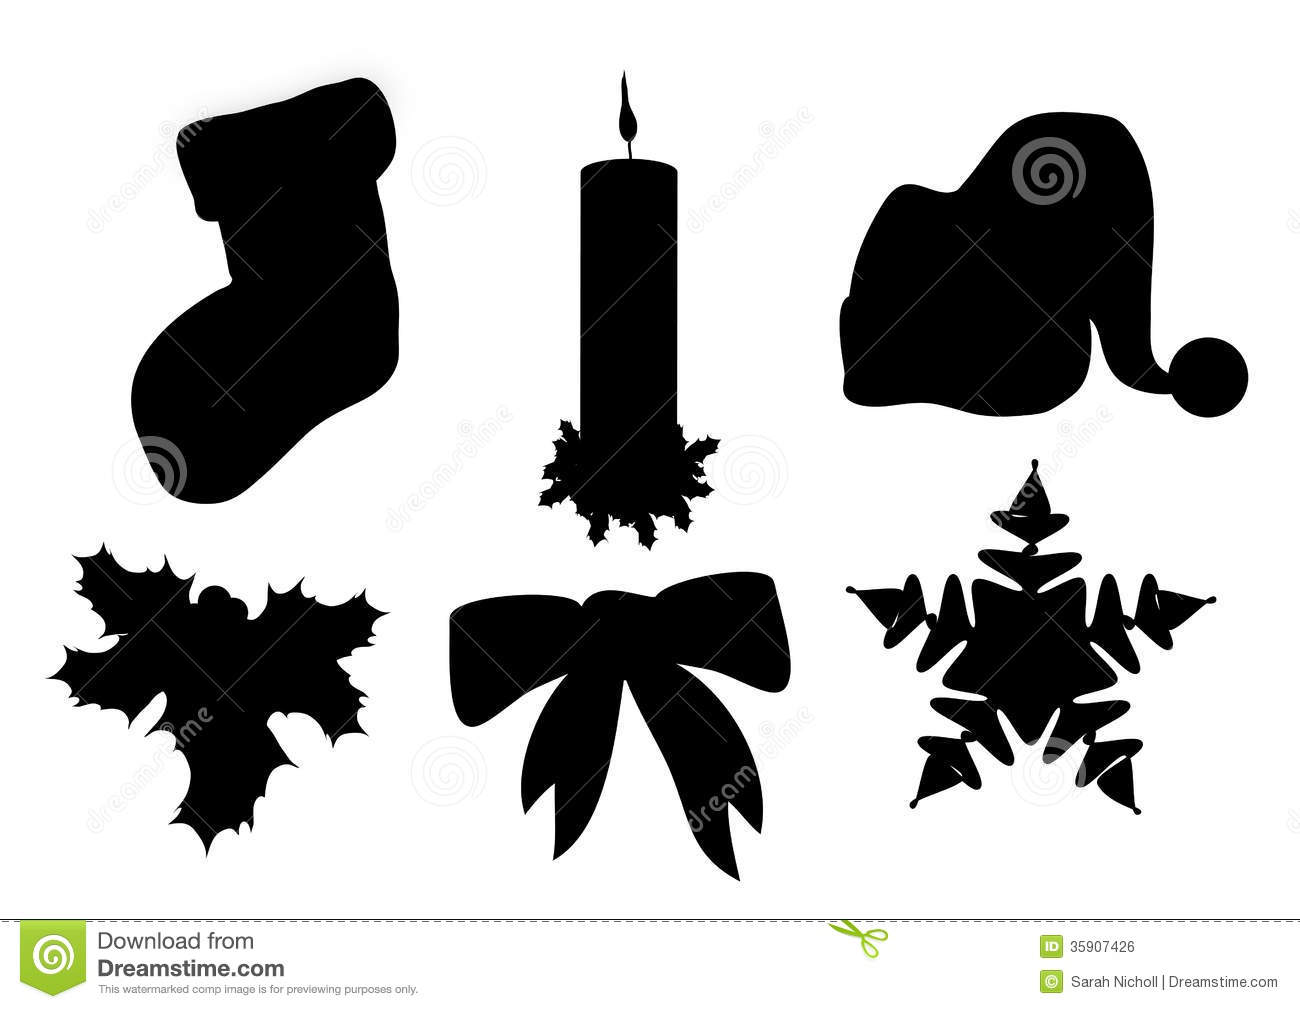 Free Black And White Airplane Clipart